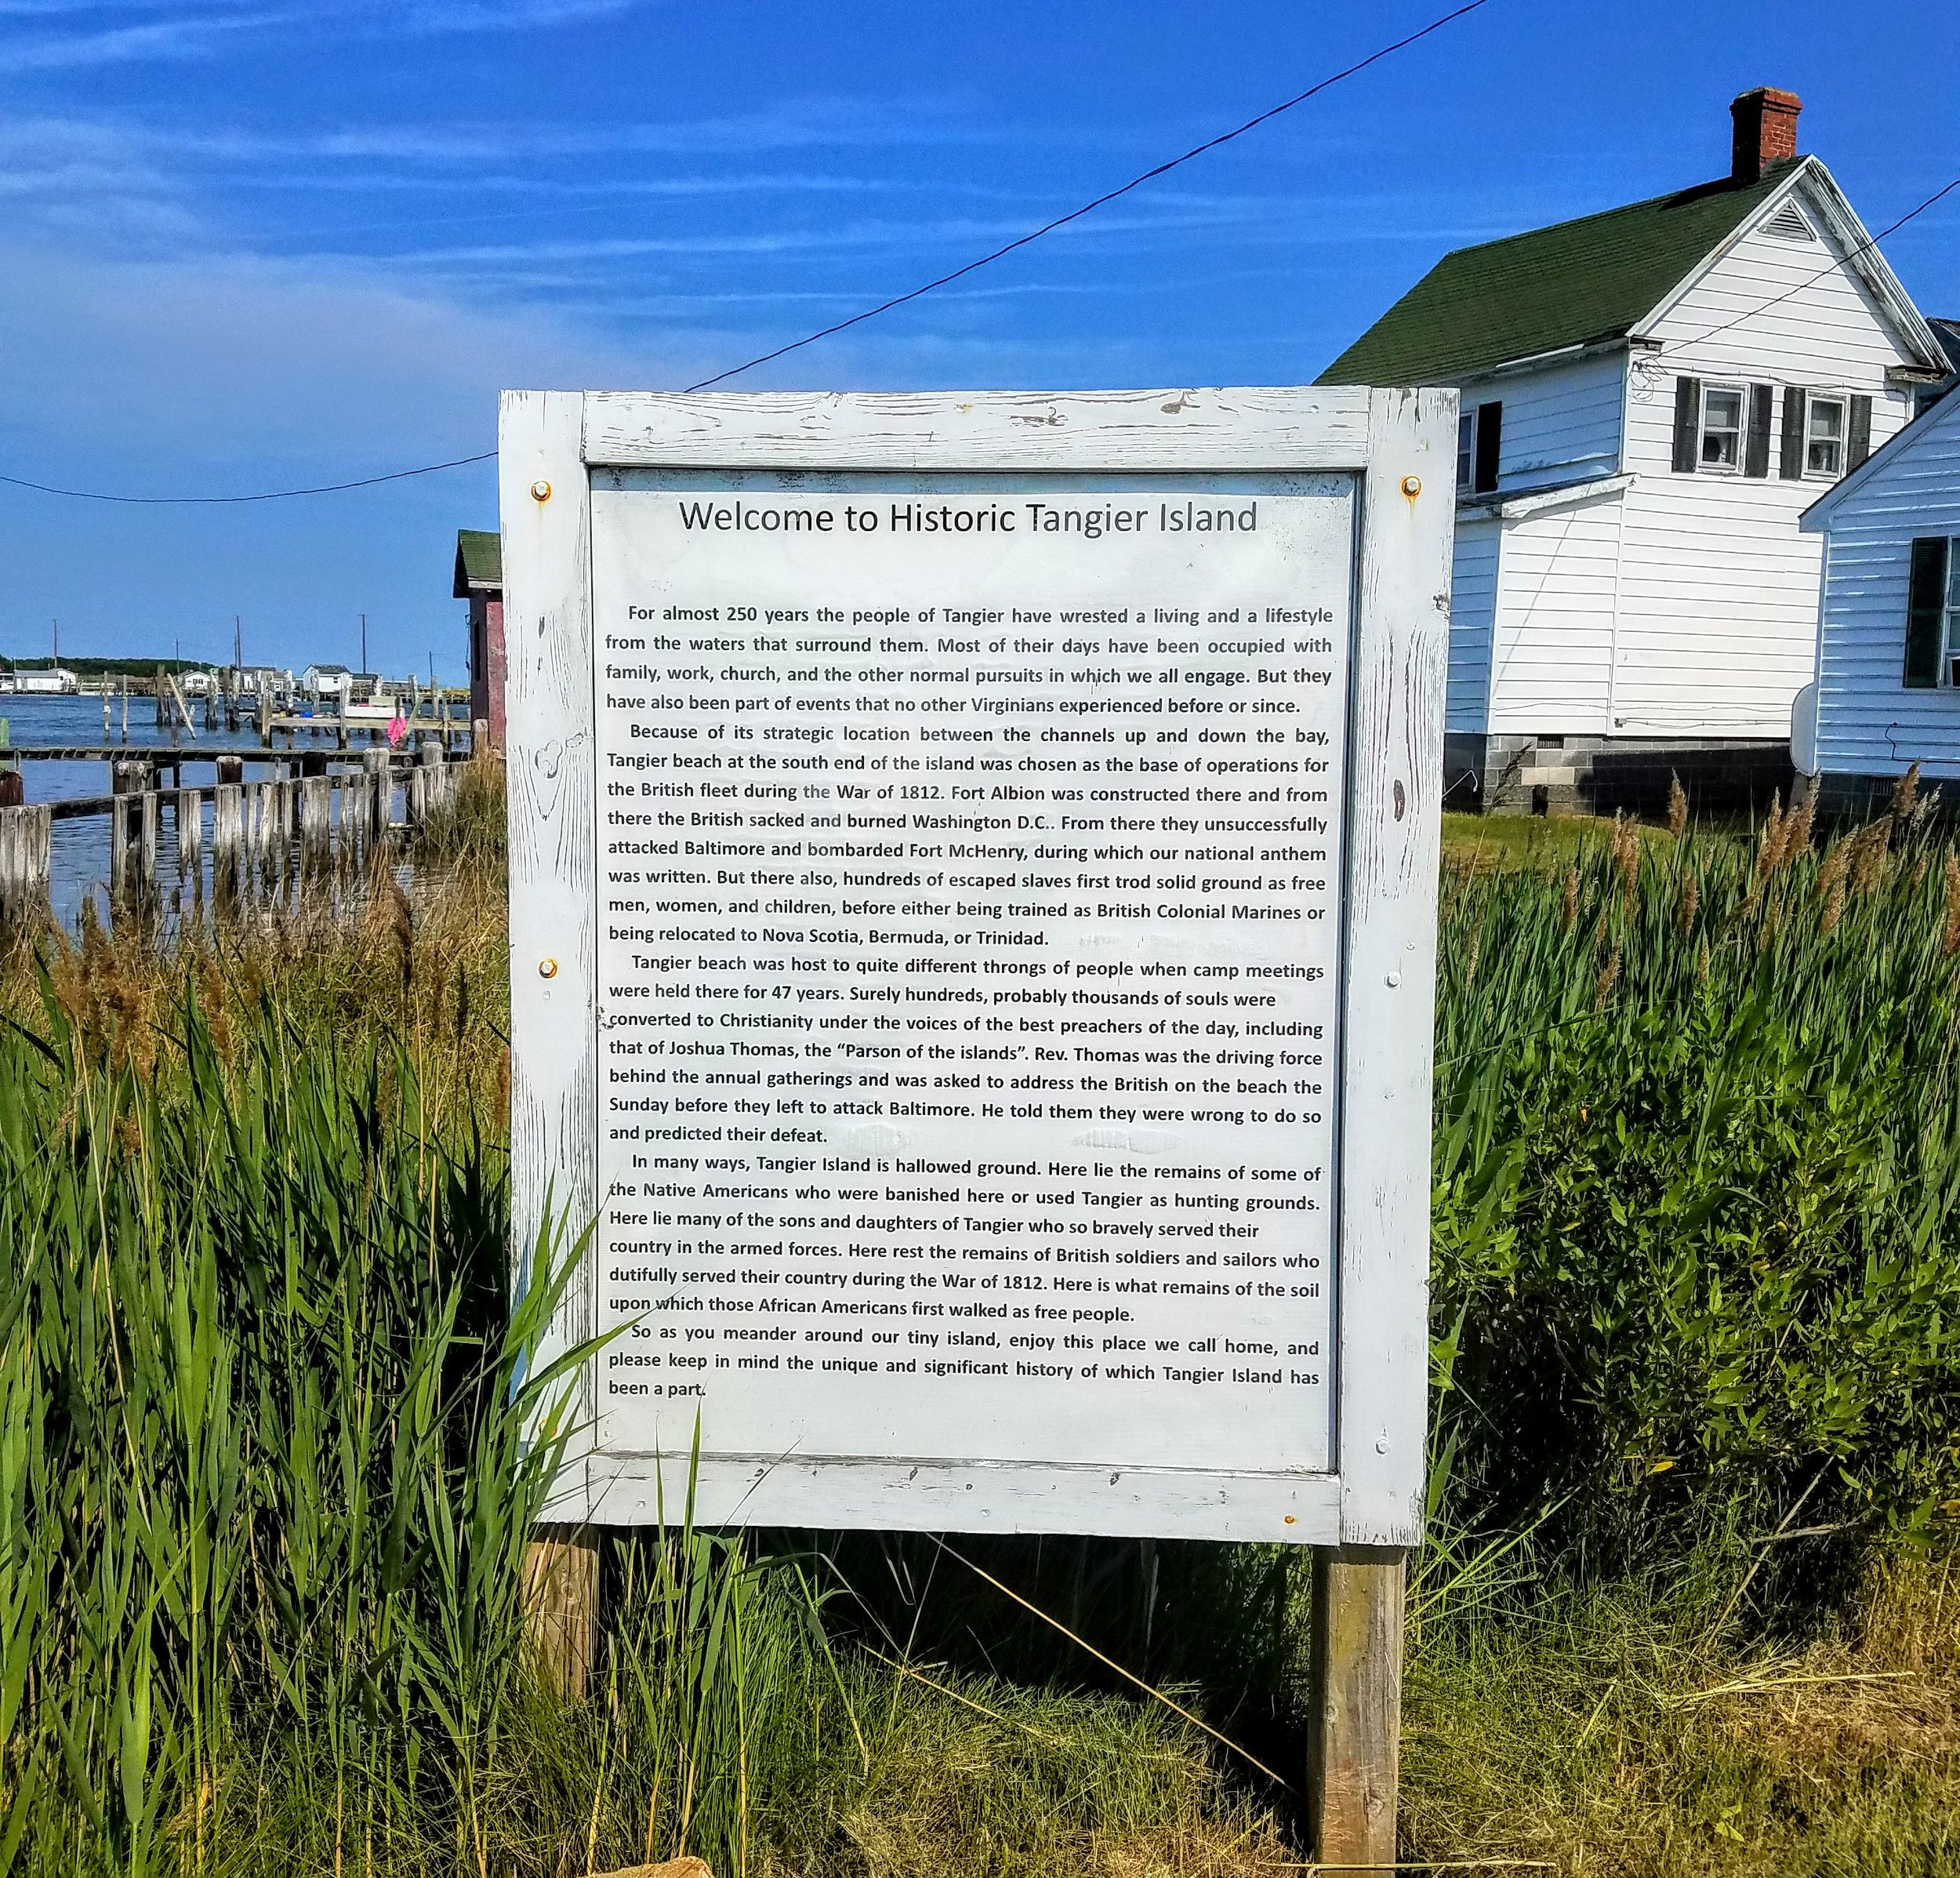 The welcome sign at Tangiers Island